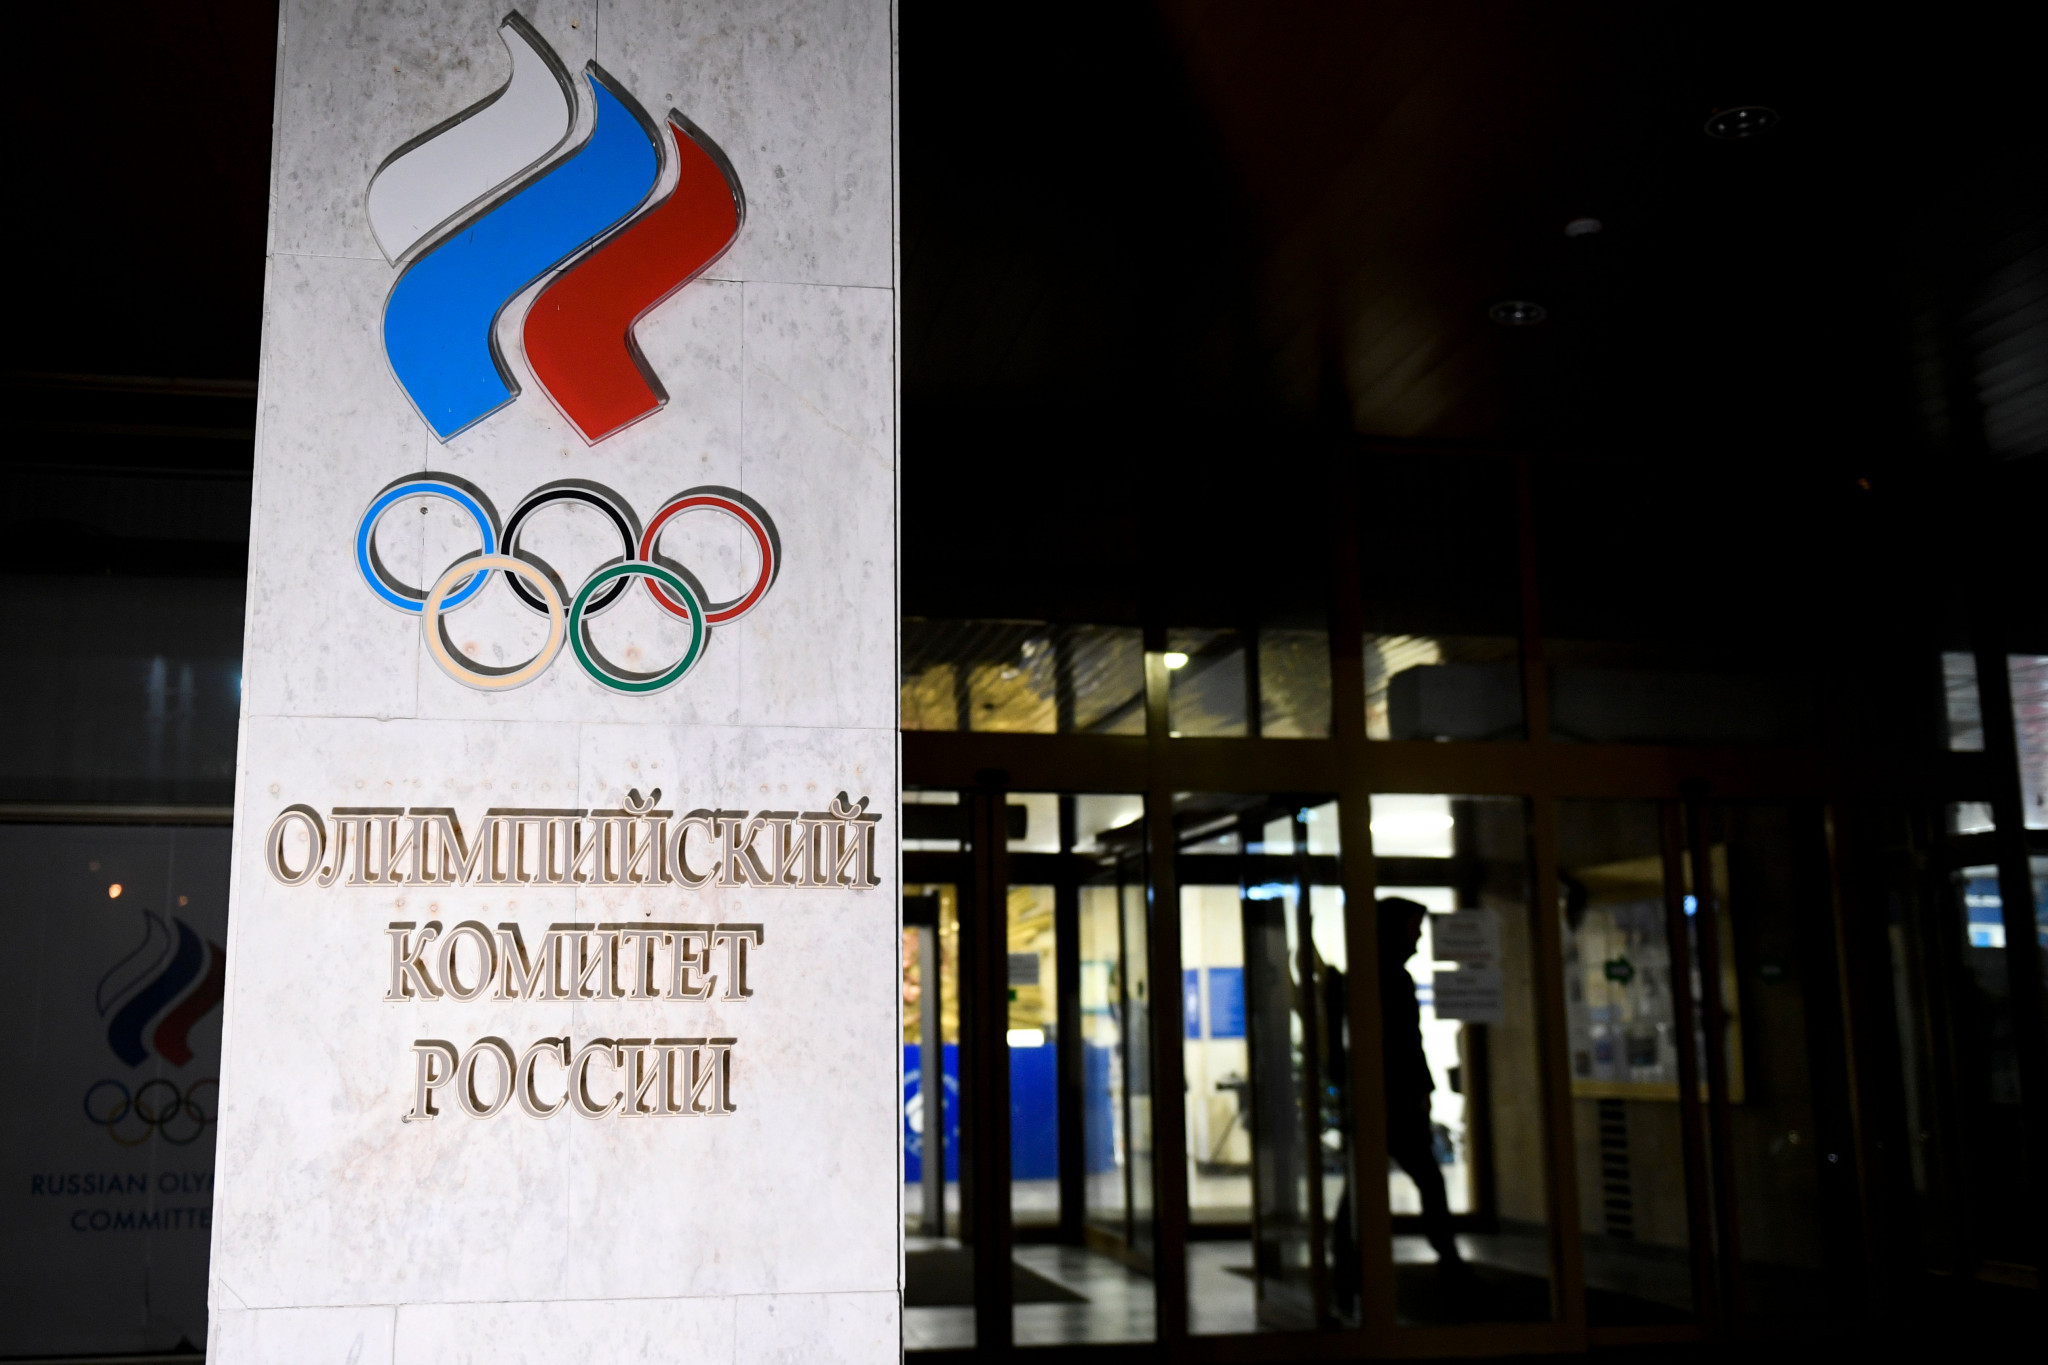 René Fasel believes politics could be the reason behind the recent decisions by the World Anti-Doing Agency on a string of proposed sanctions against Russian sports ©Getty Images